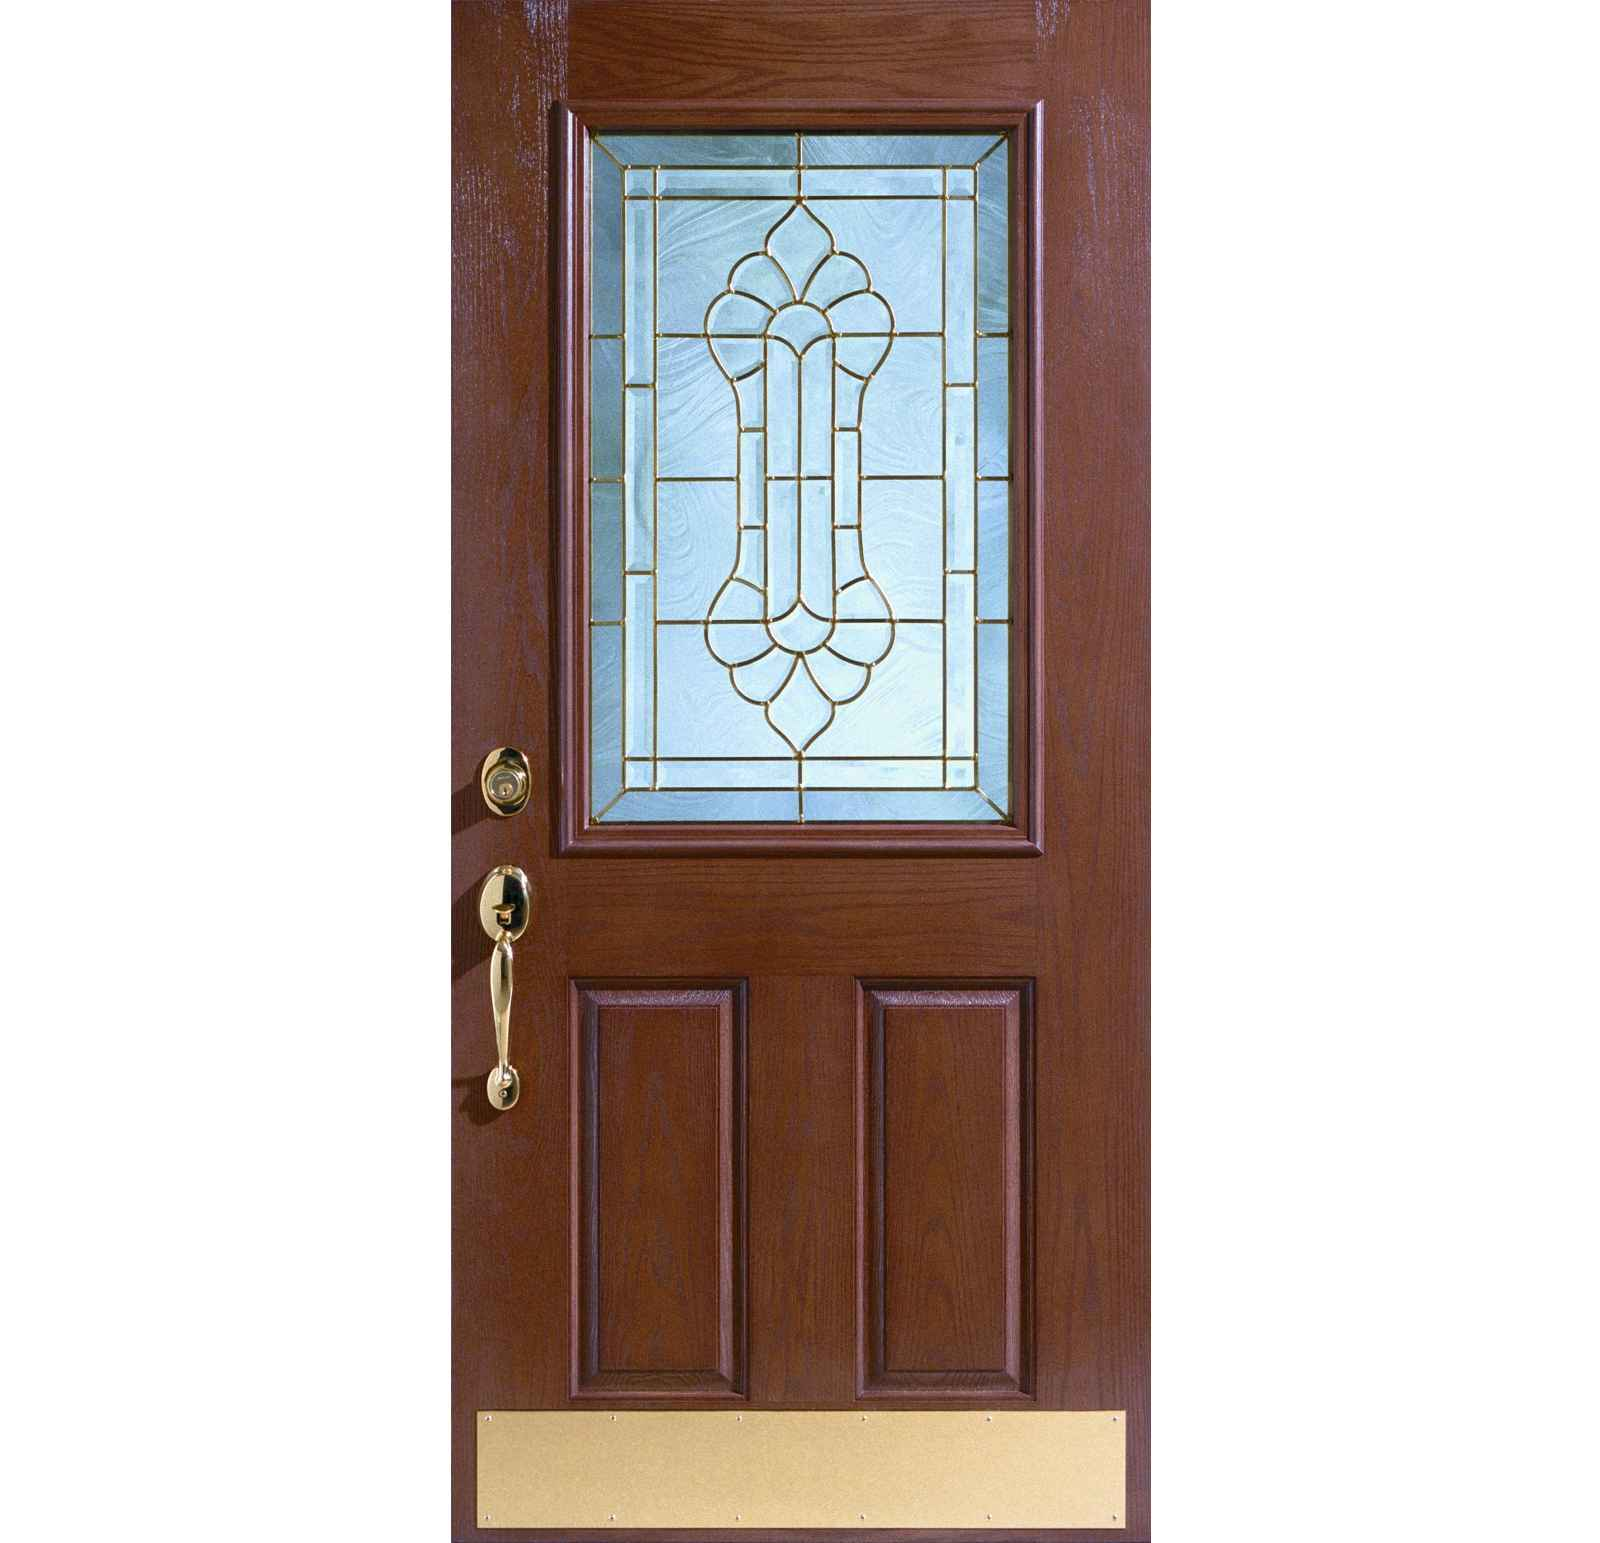 1543 #9A7331  Pairs Cheap Entry Doors Saint Michelle Classic Affordable Entry Door pic Entry Doors With Transom 40411600